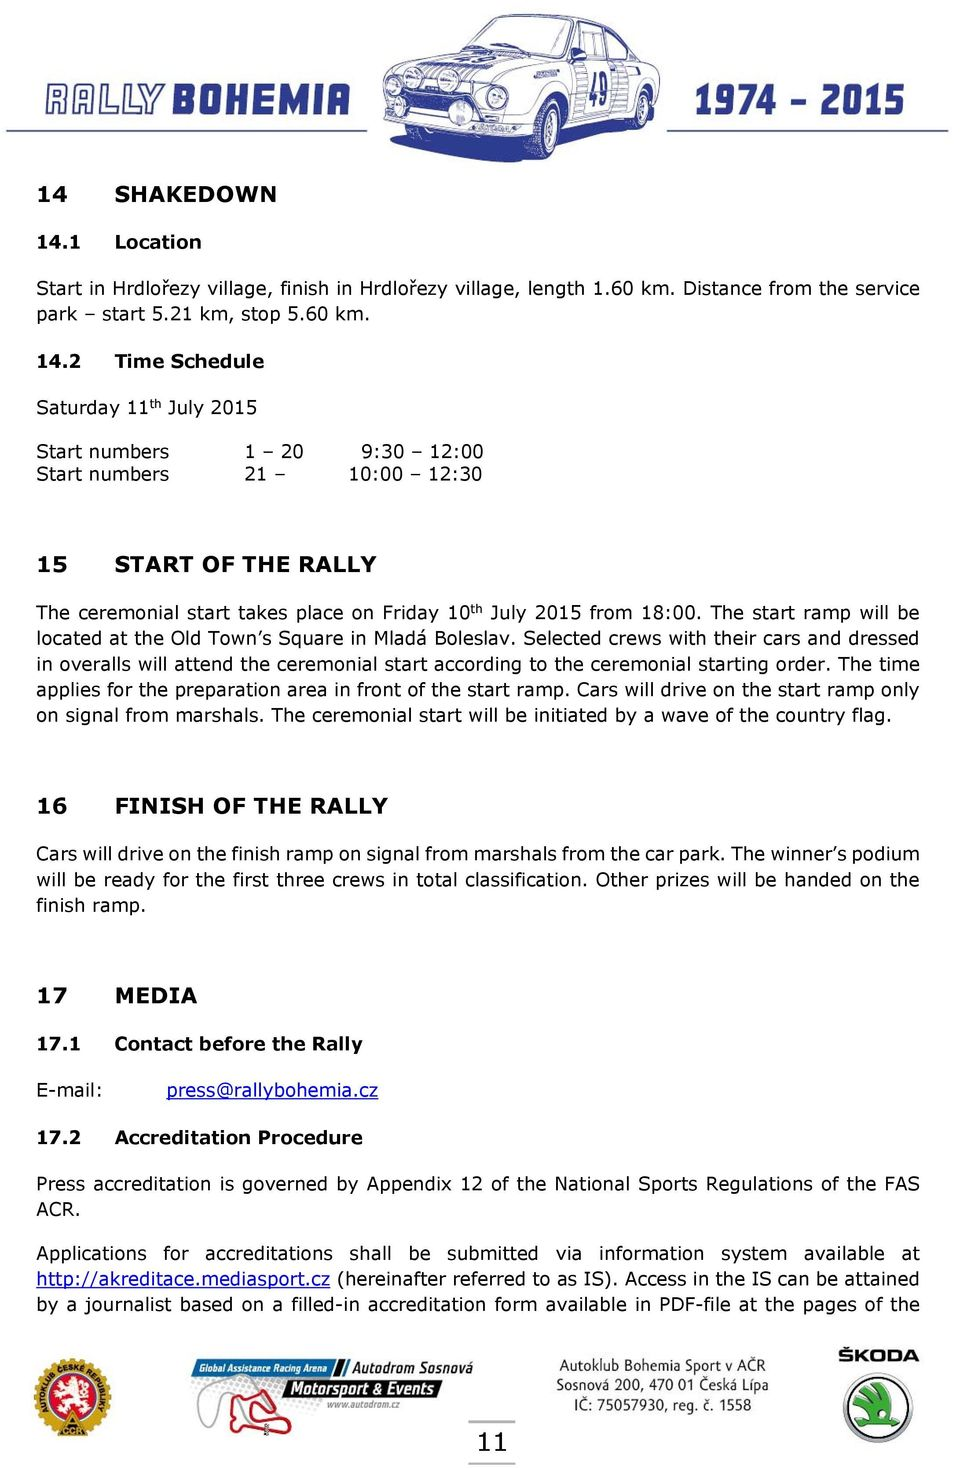 2 Time Schedule Saturday 11 th July 2015 Start numbers 1 20 9:30 12:00 Start numbers 21 10:00 12:30 15 START OF THE RALLY The ceremonial start takes place on Friday 10 th July 2015 from 18:00.